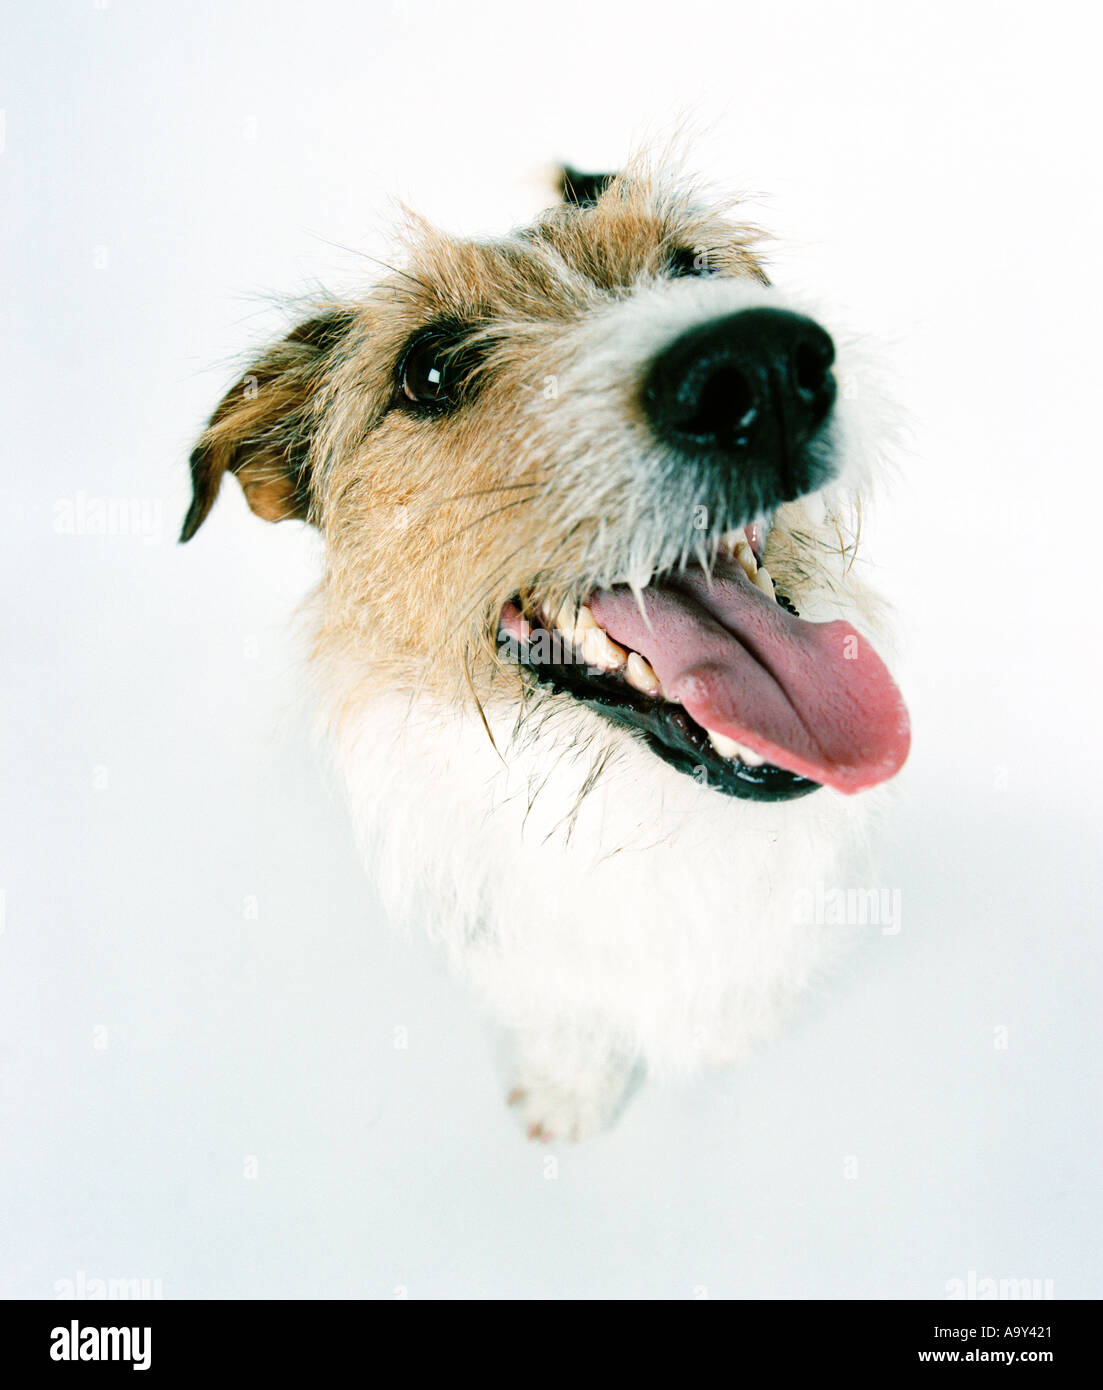 Jack Russell dog in white room - Stock Image